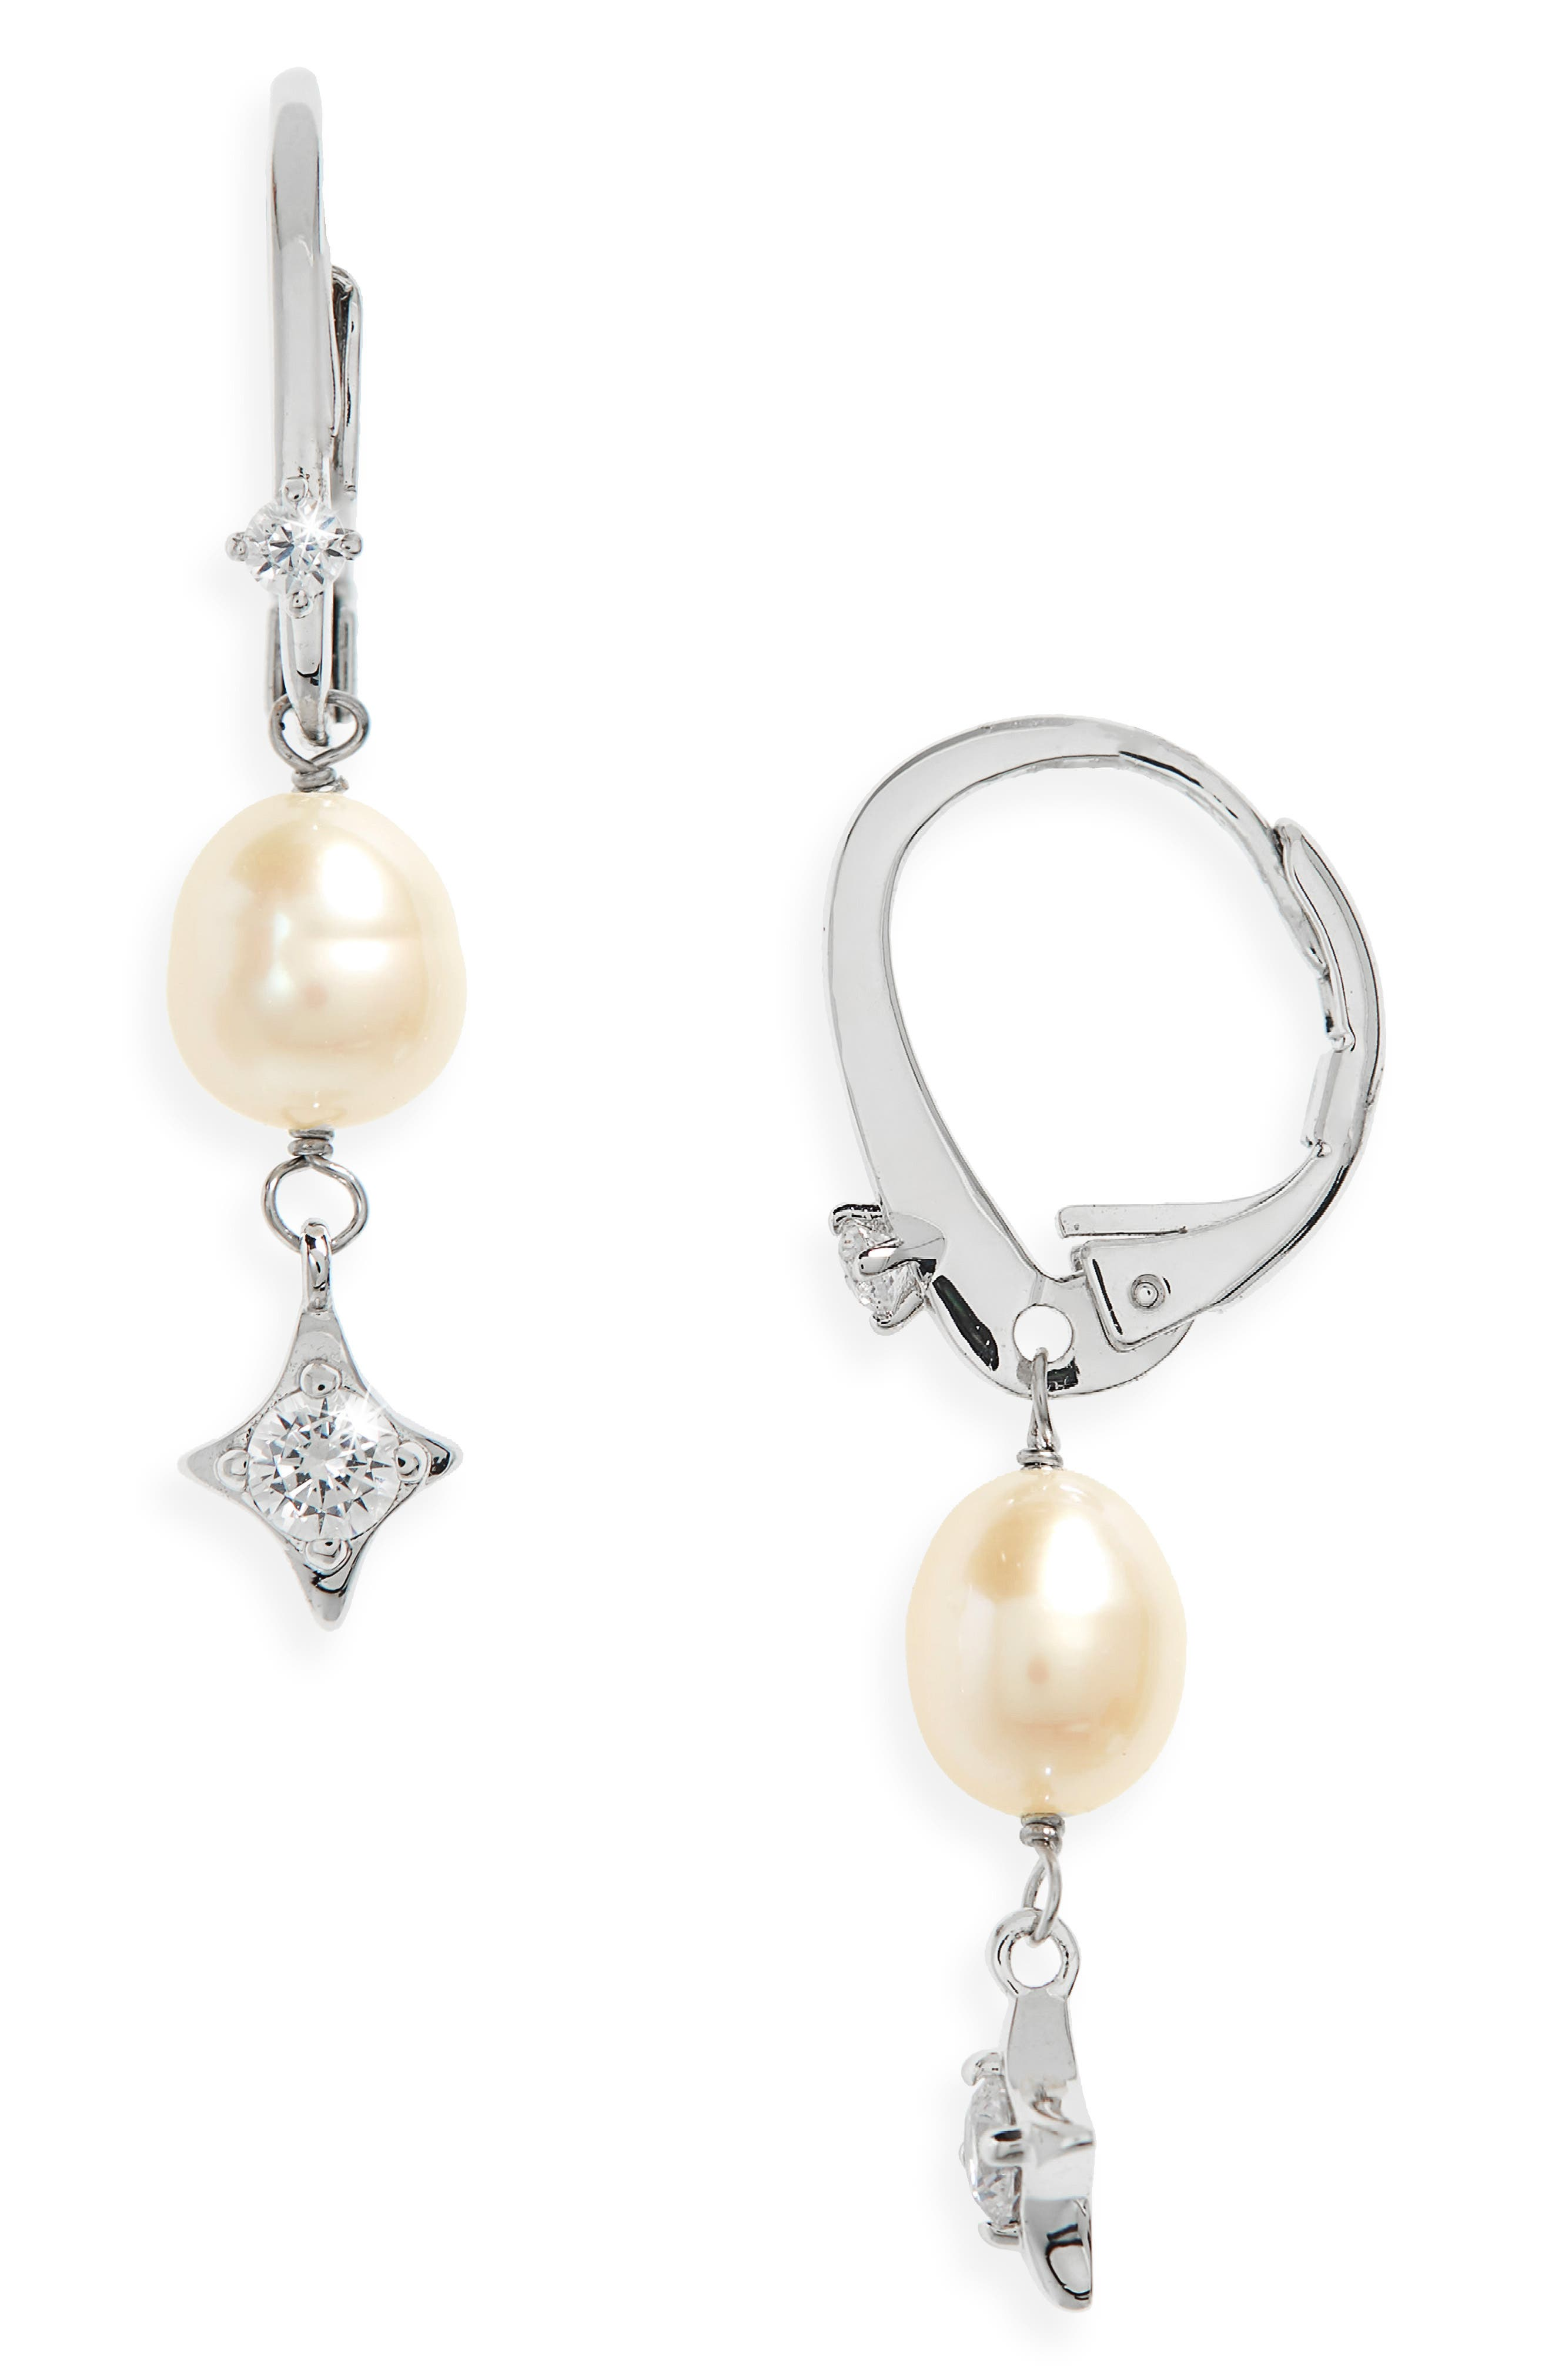 Freshwater Pearl Drop Earrings,                         Main,                         color, Silver/ White Pearl